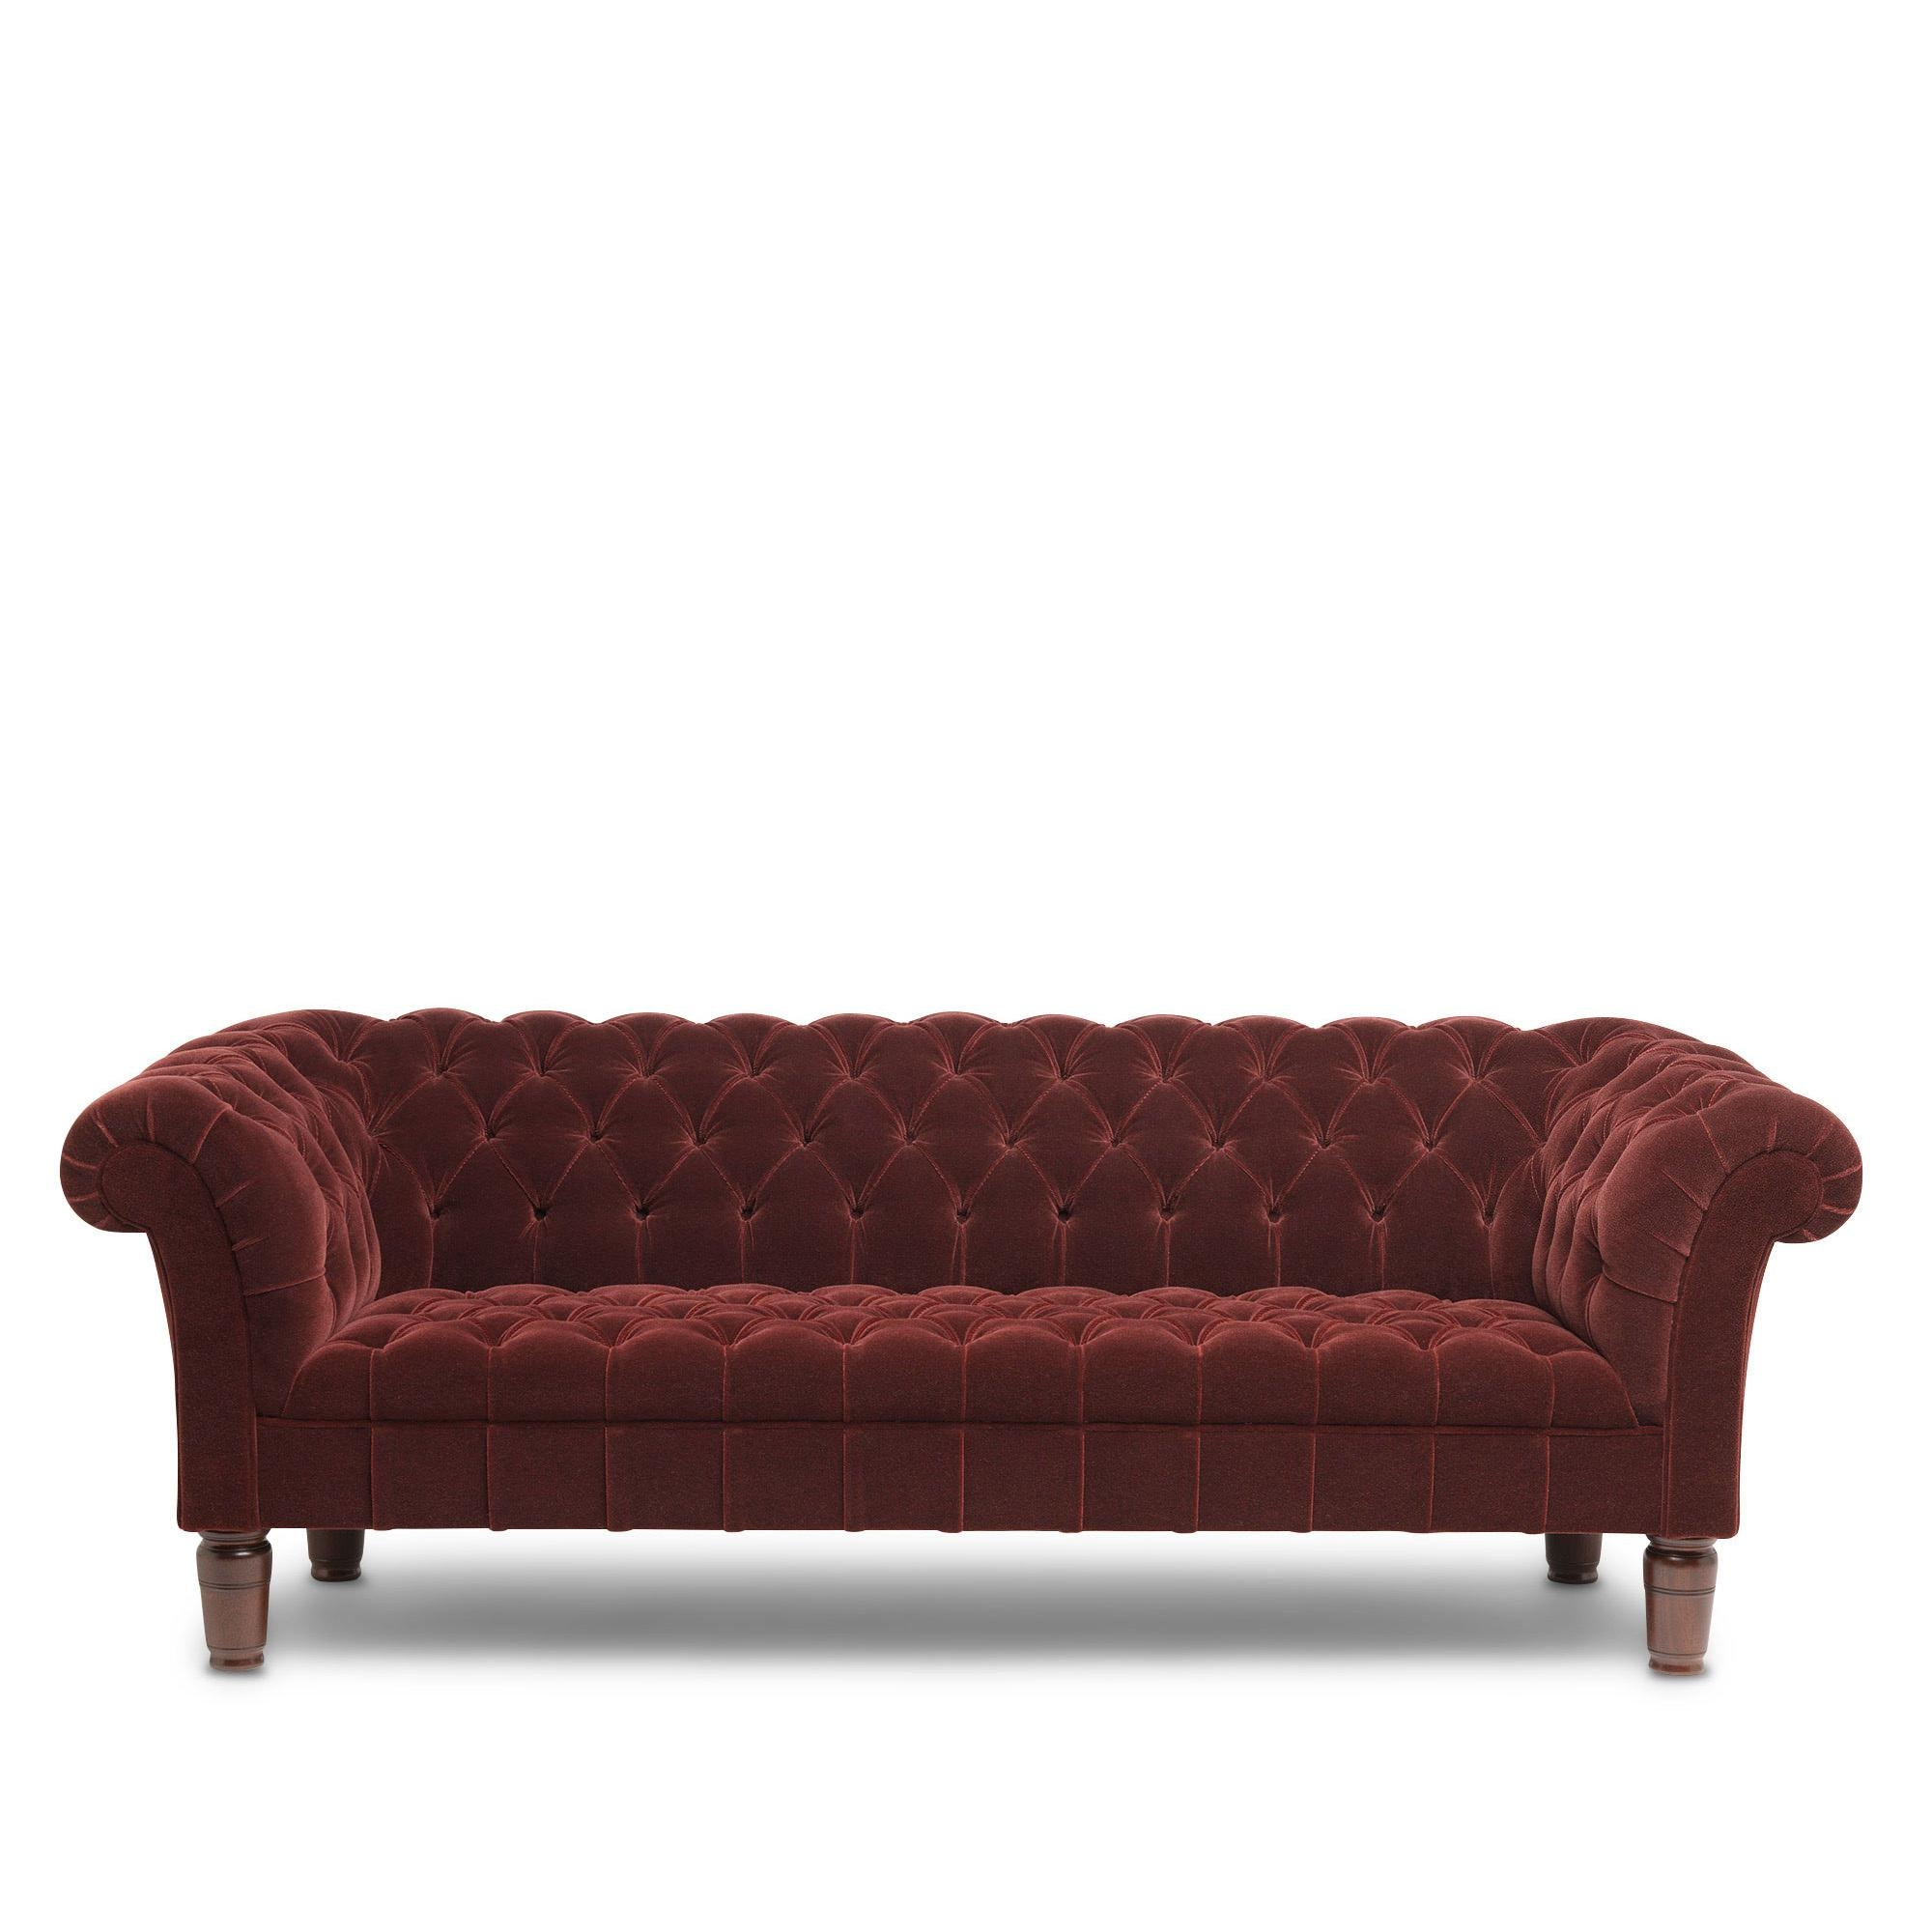 Chesterfield Sofa, Burgundy Mohair Pertaining To Red Chesterfield Sofas (Image 6 of 20)